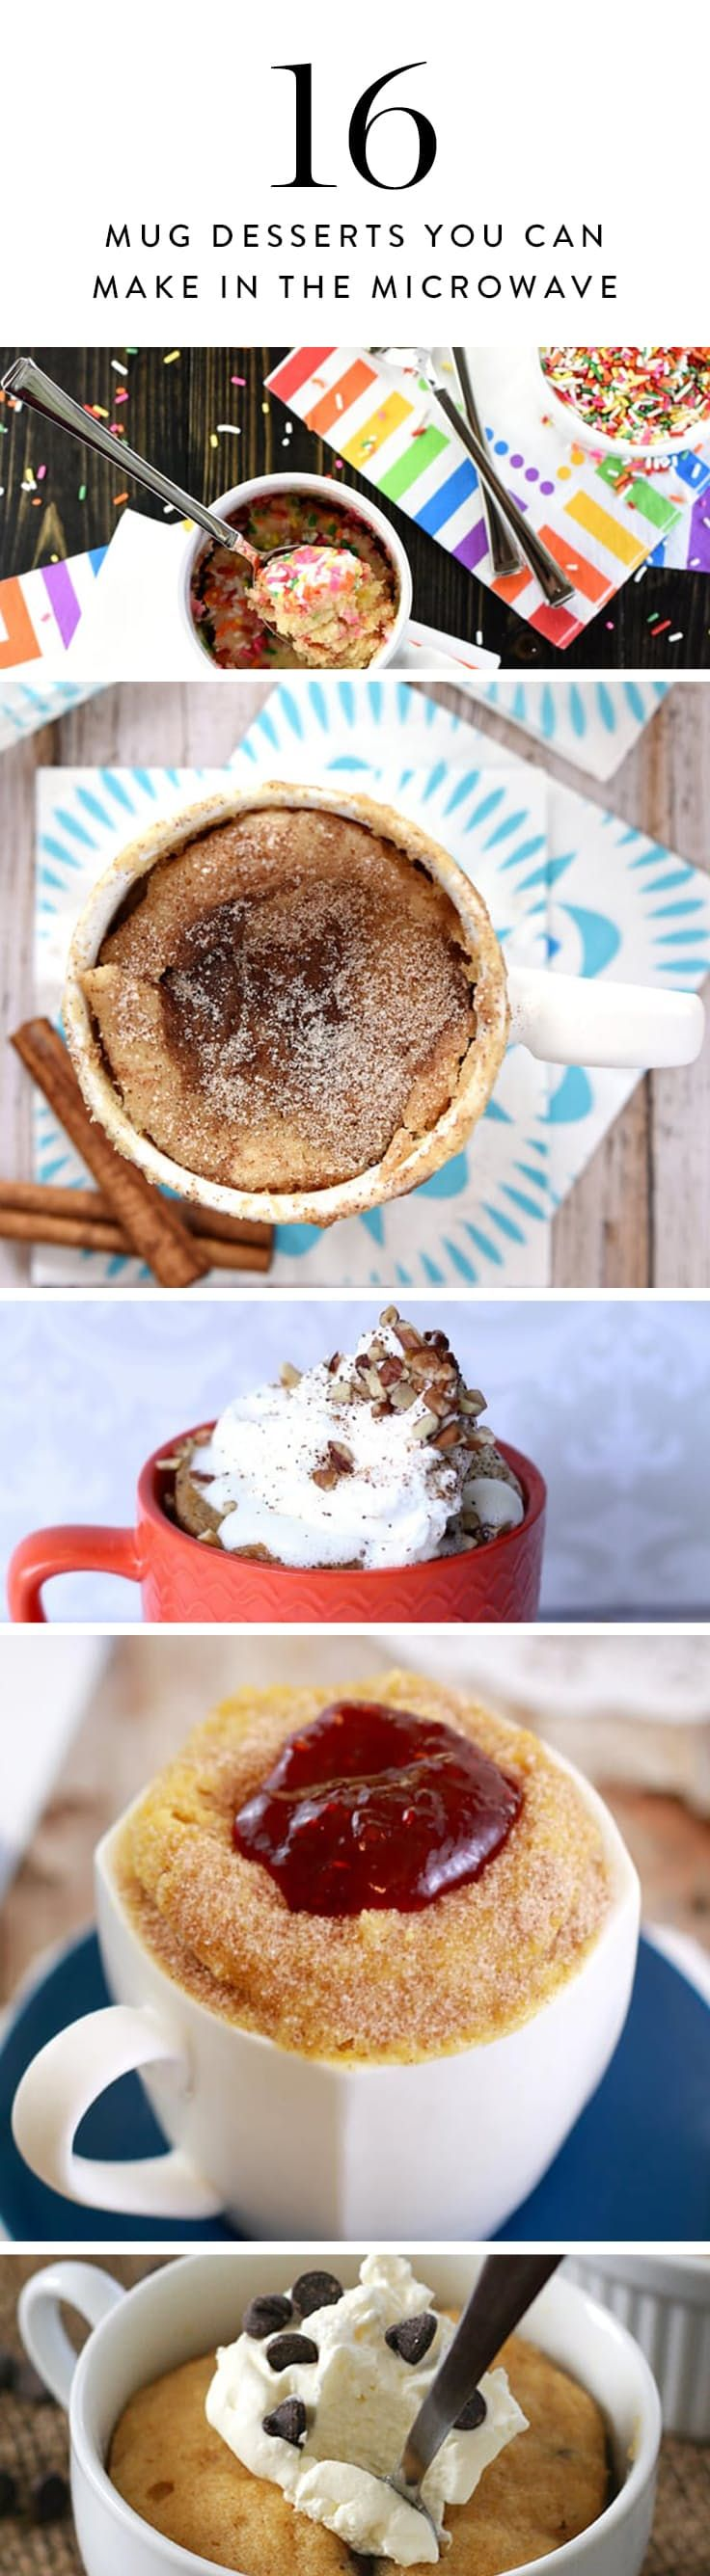 16 Mug Desserts You Can Make in the Microwave via @PureWow